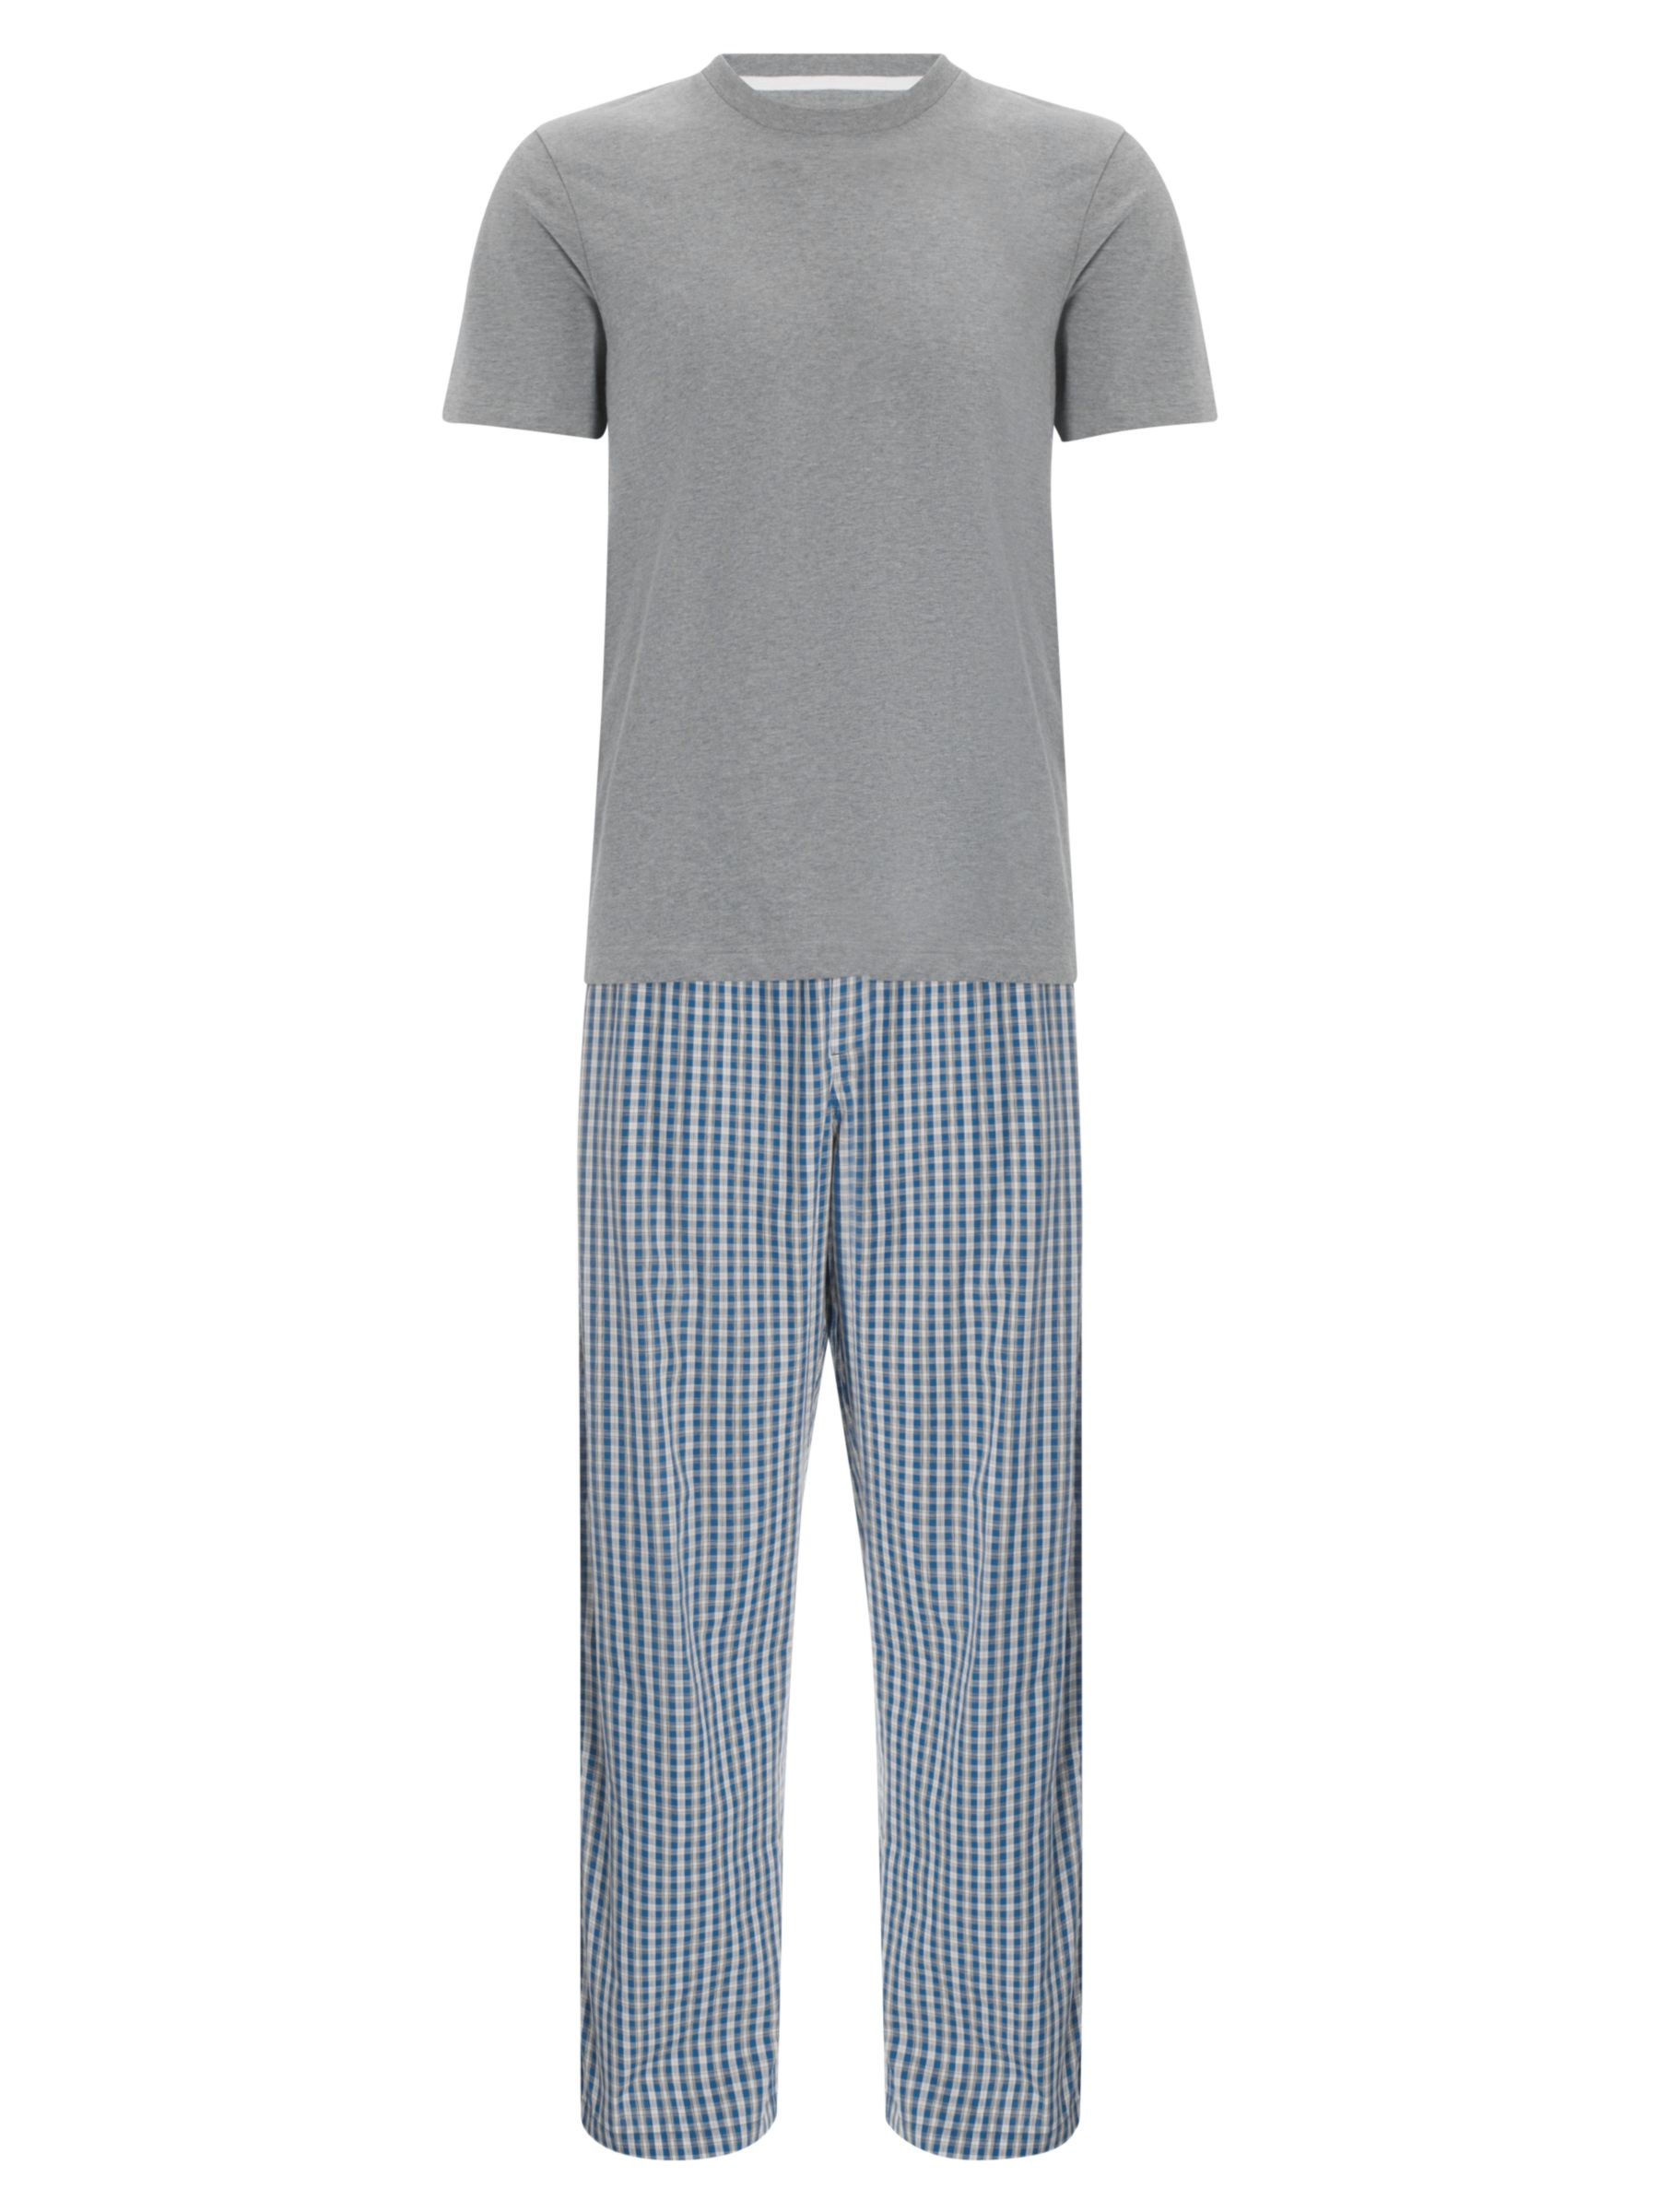 John Lewis Short Sleeve T-Shirt and Gingham Lounge Pants